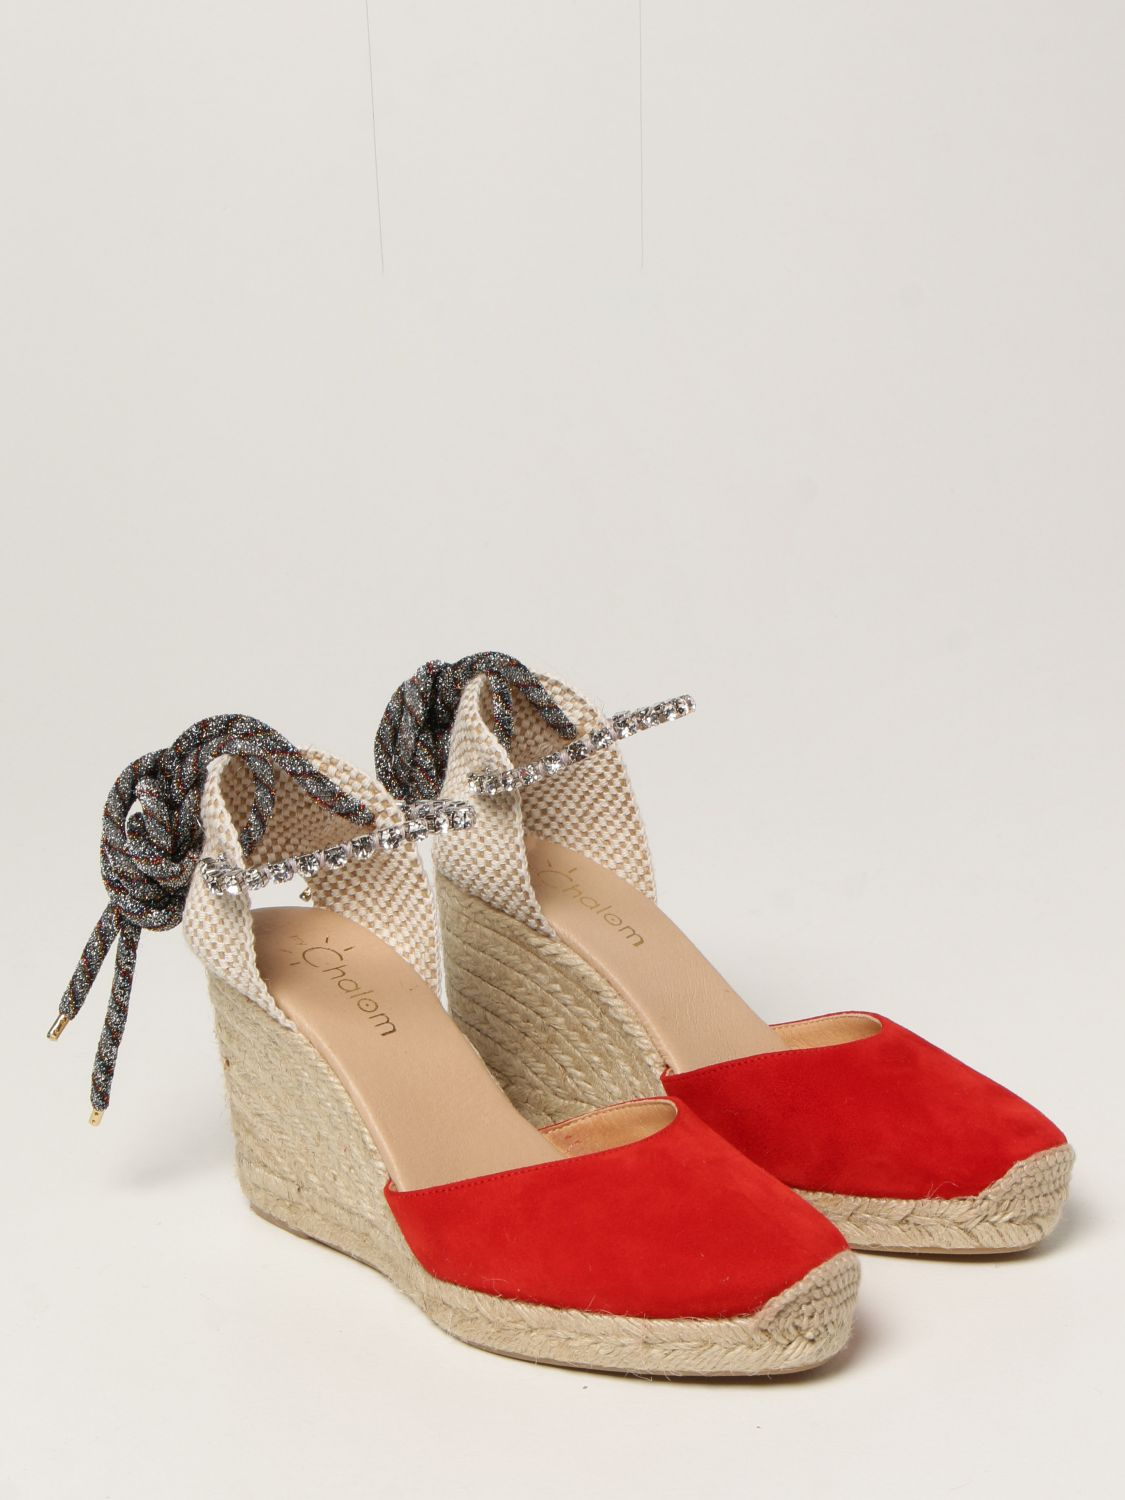 Chaussures compensées My Chalom: Chaussures femme My Chalom rouge 2